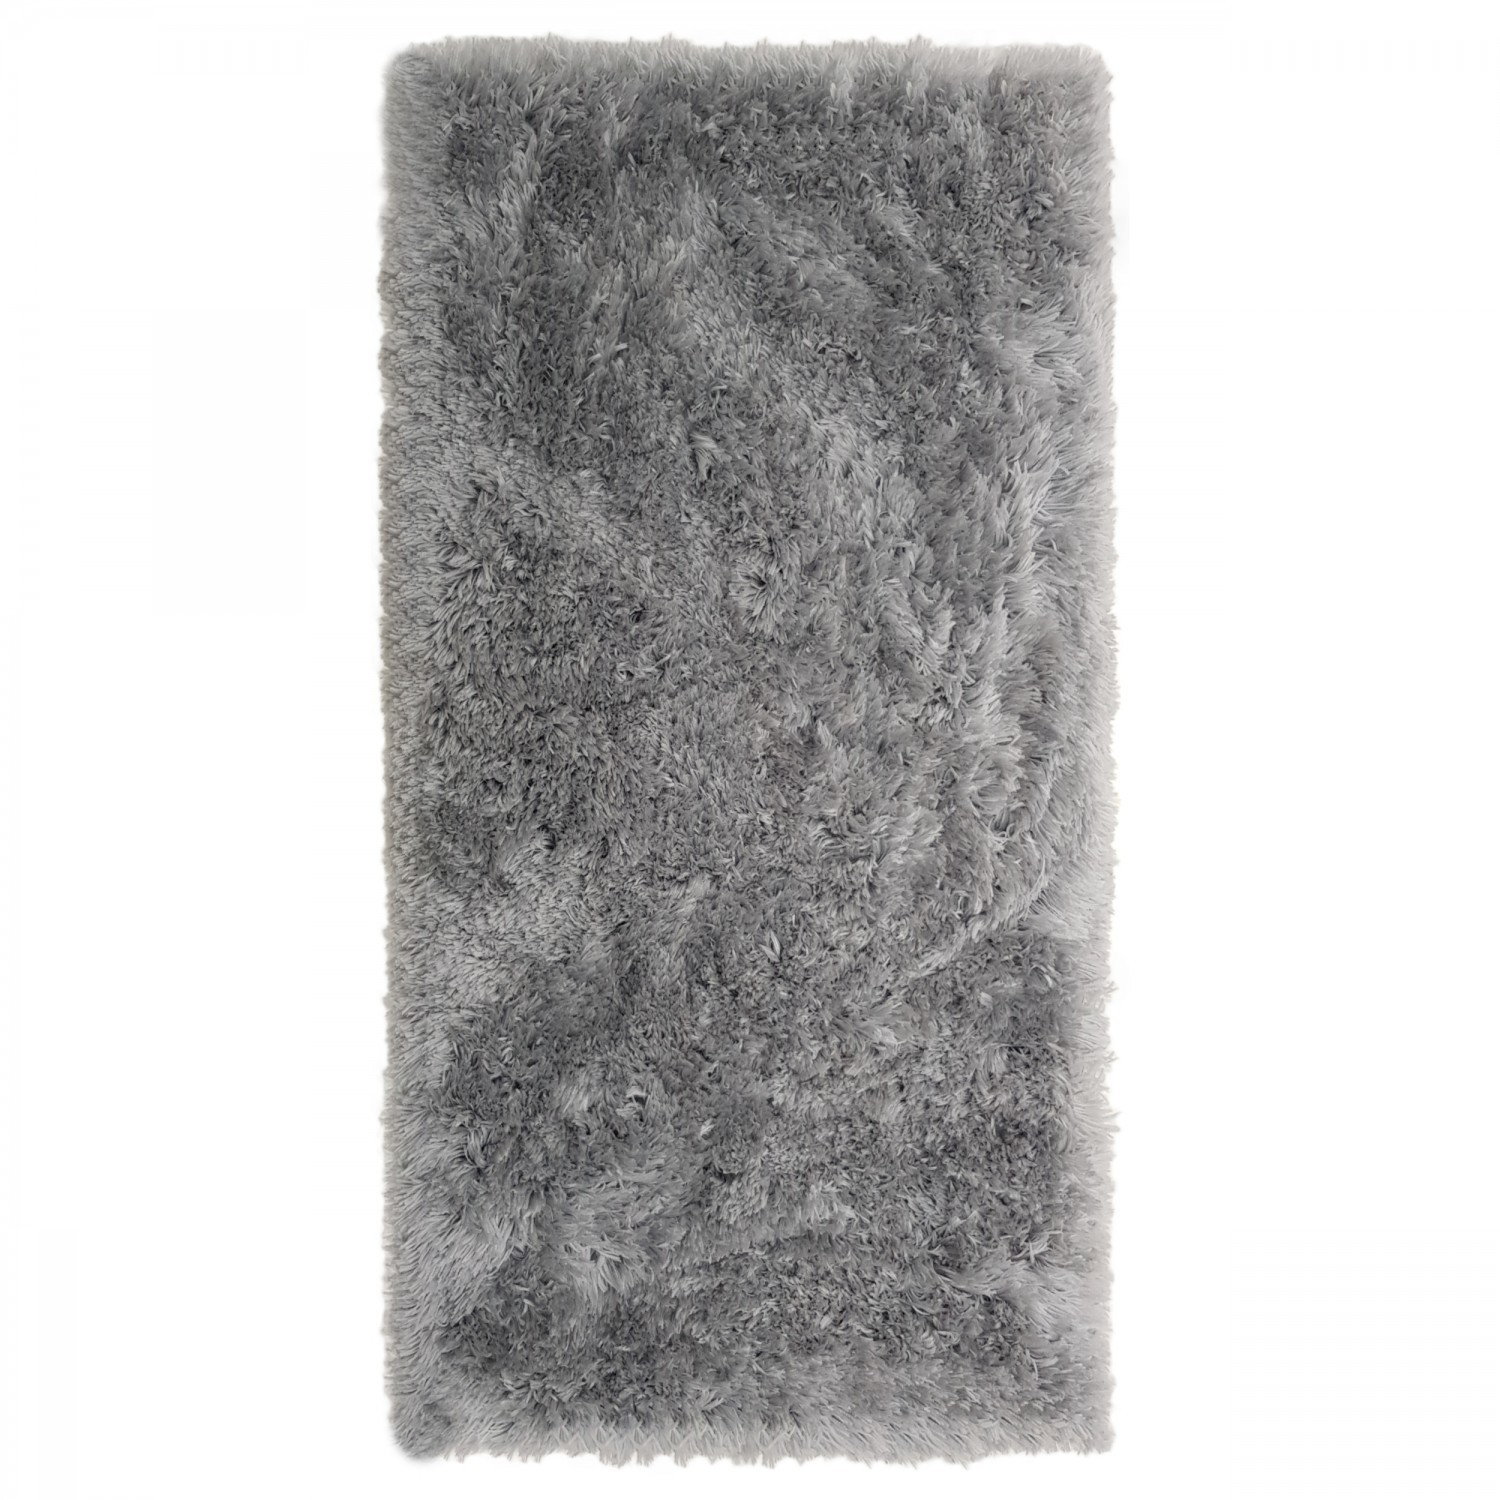 Covor living / dormitor Wuhan Chip Shaggy 4 poliester dreptunghiular gri 140 x 200 cm